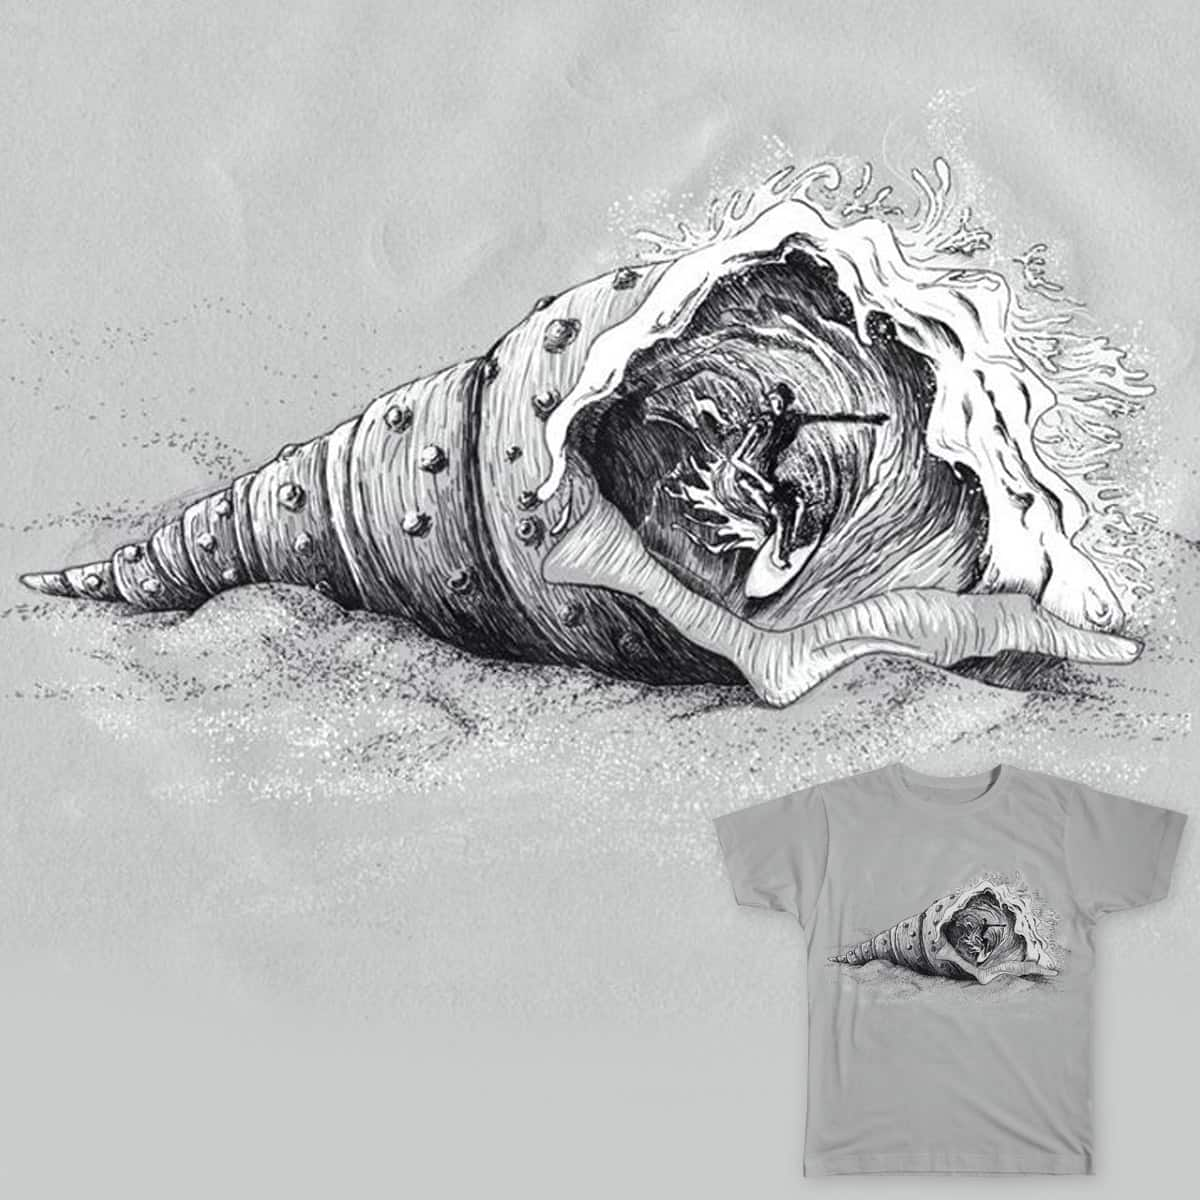 Shell Surf by Leandro Lima on Threadless